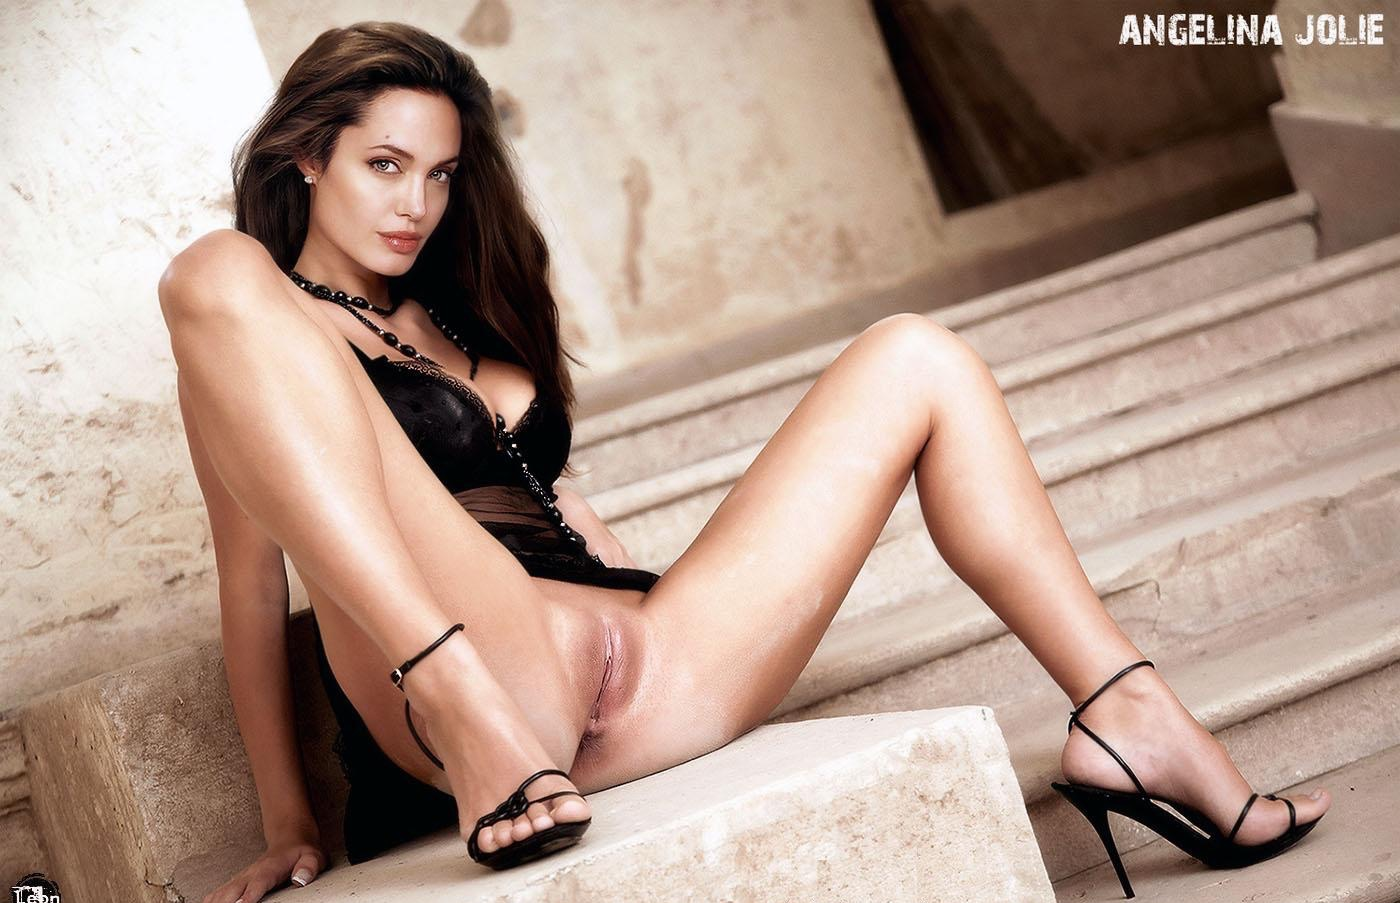 Angelina Jolie Nude Naked Xxx Sex Best Fake Photos 67 Pics-7159